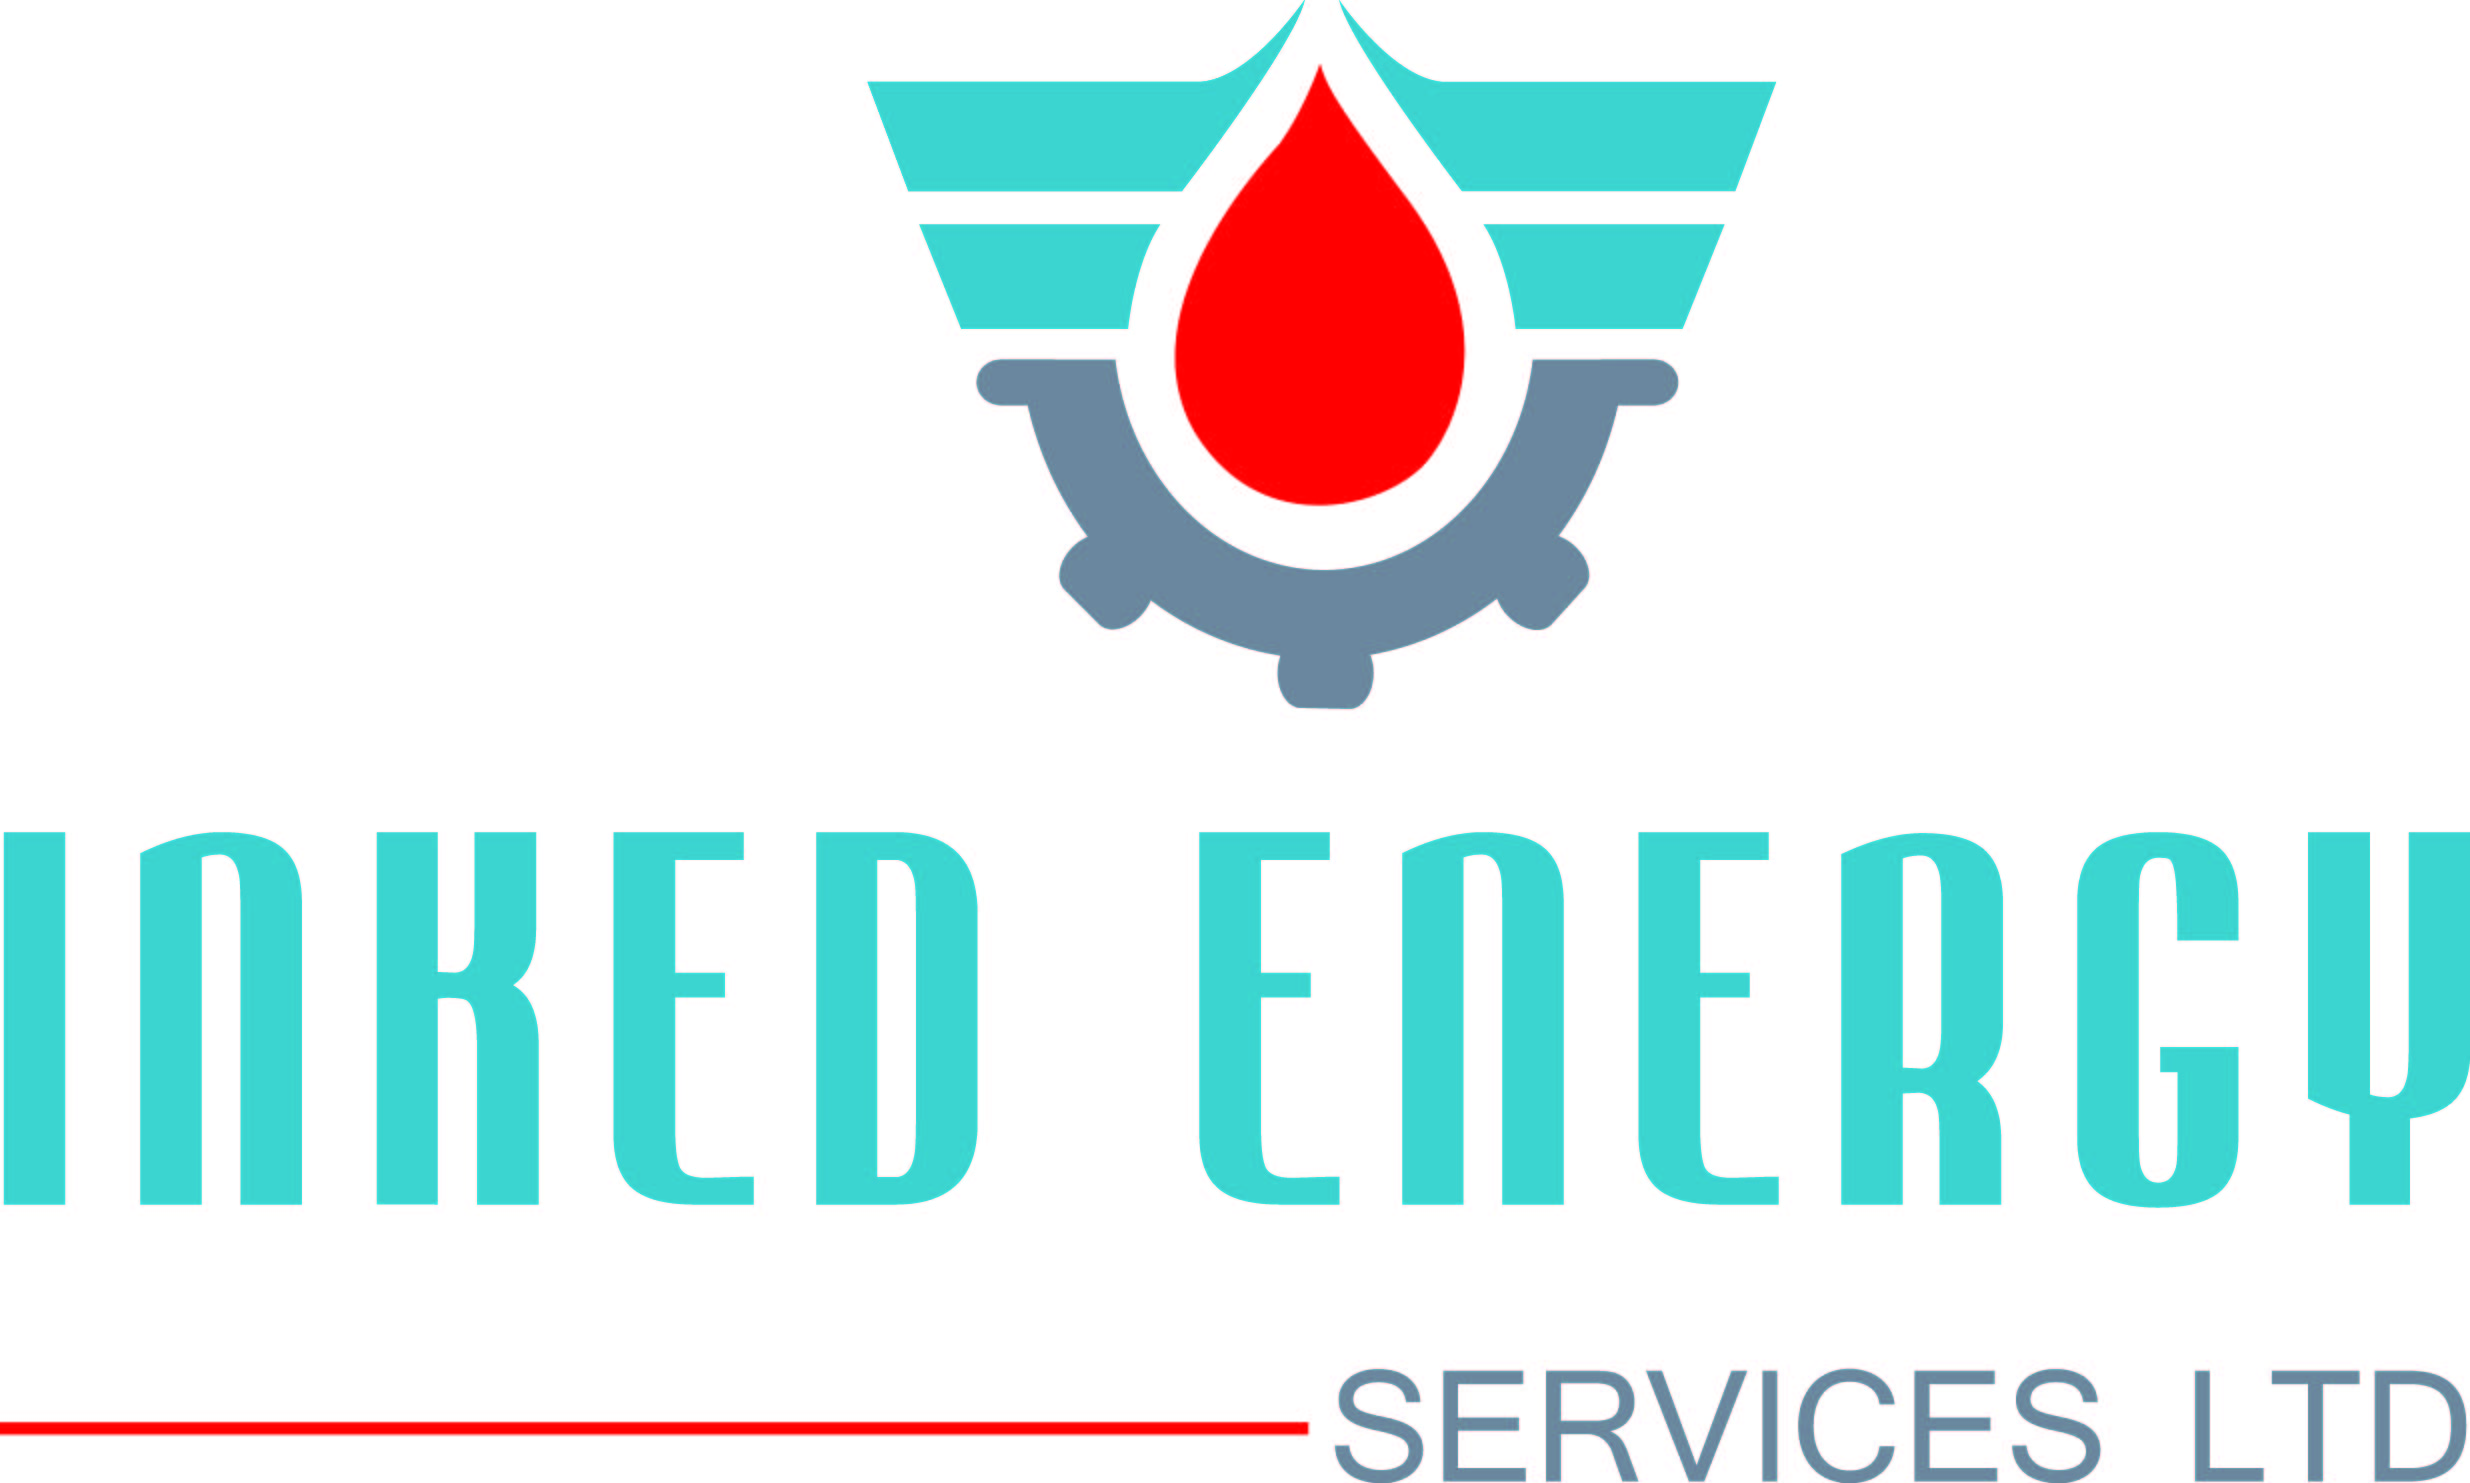 Logo Design by Private User - Entry No. 64 in the Logo Design Contest Creative Logo Design for INKED ENERGY SERVICES LTD.